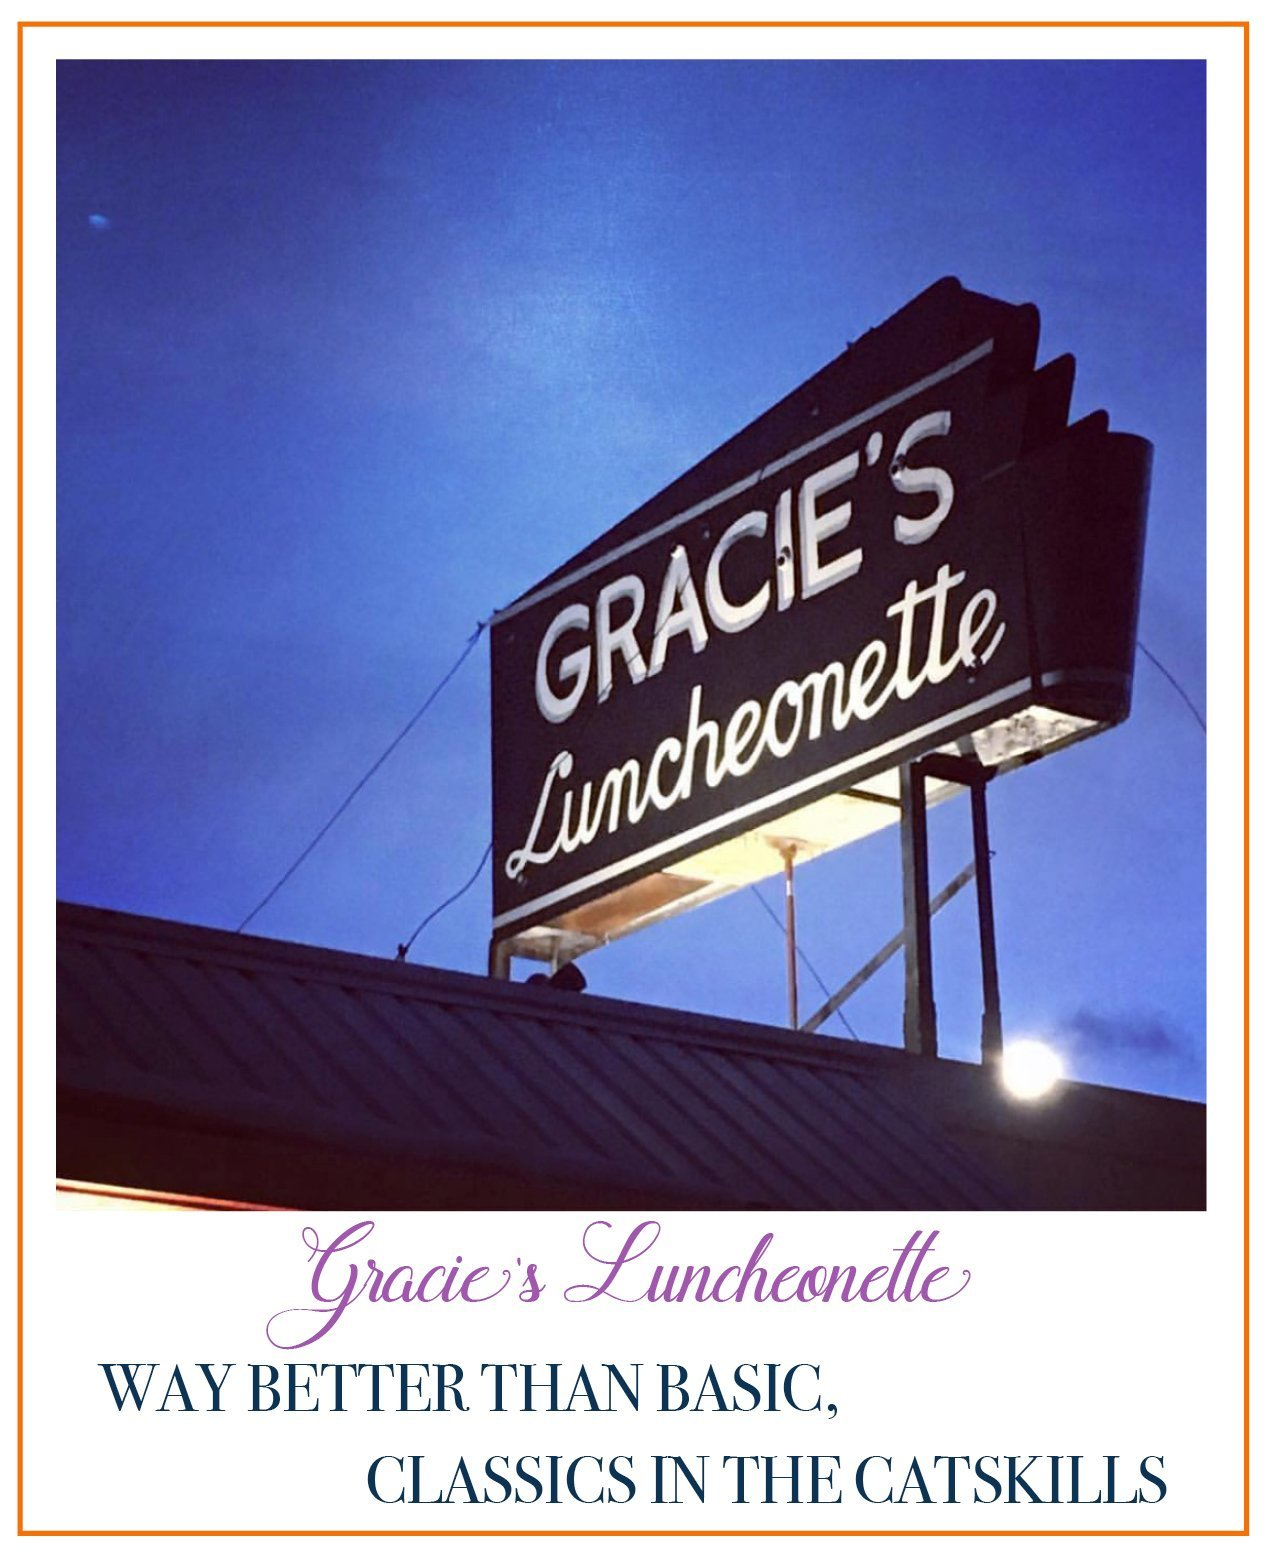 Gracie's Luncheonette | The Upstate Update photo